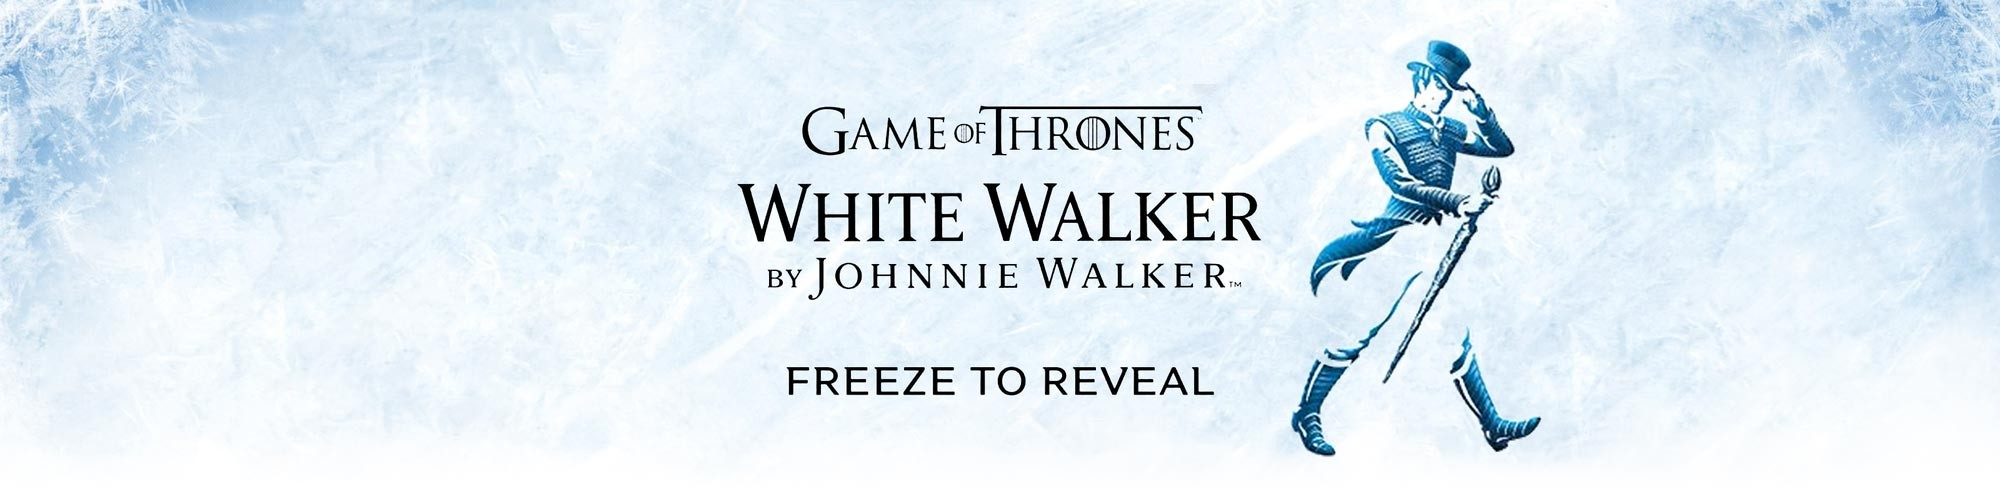 Game of Thrones White Walker by Johnnie Walker Whisky